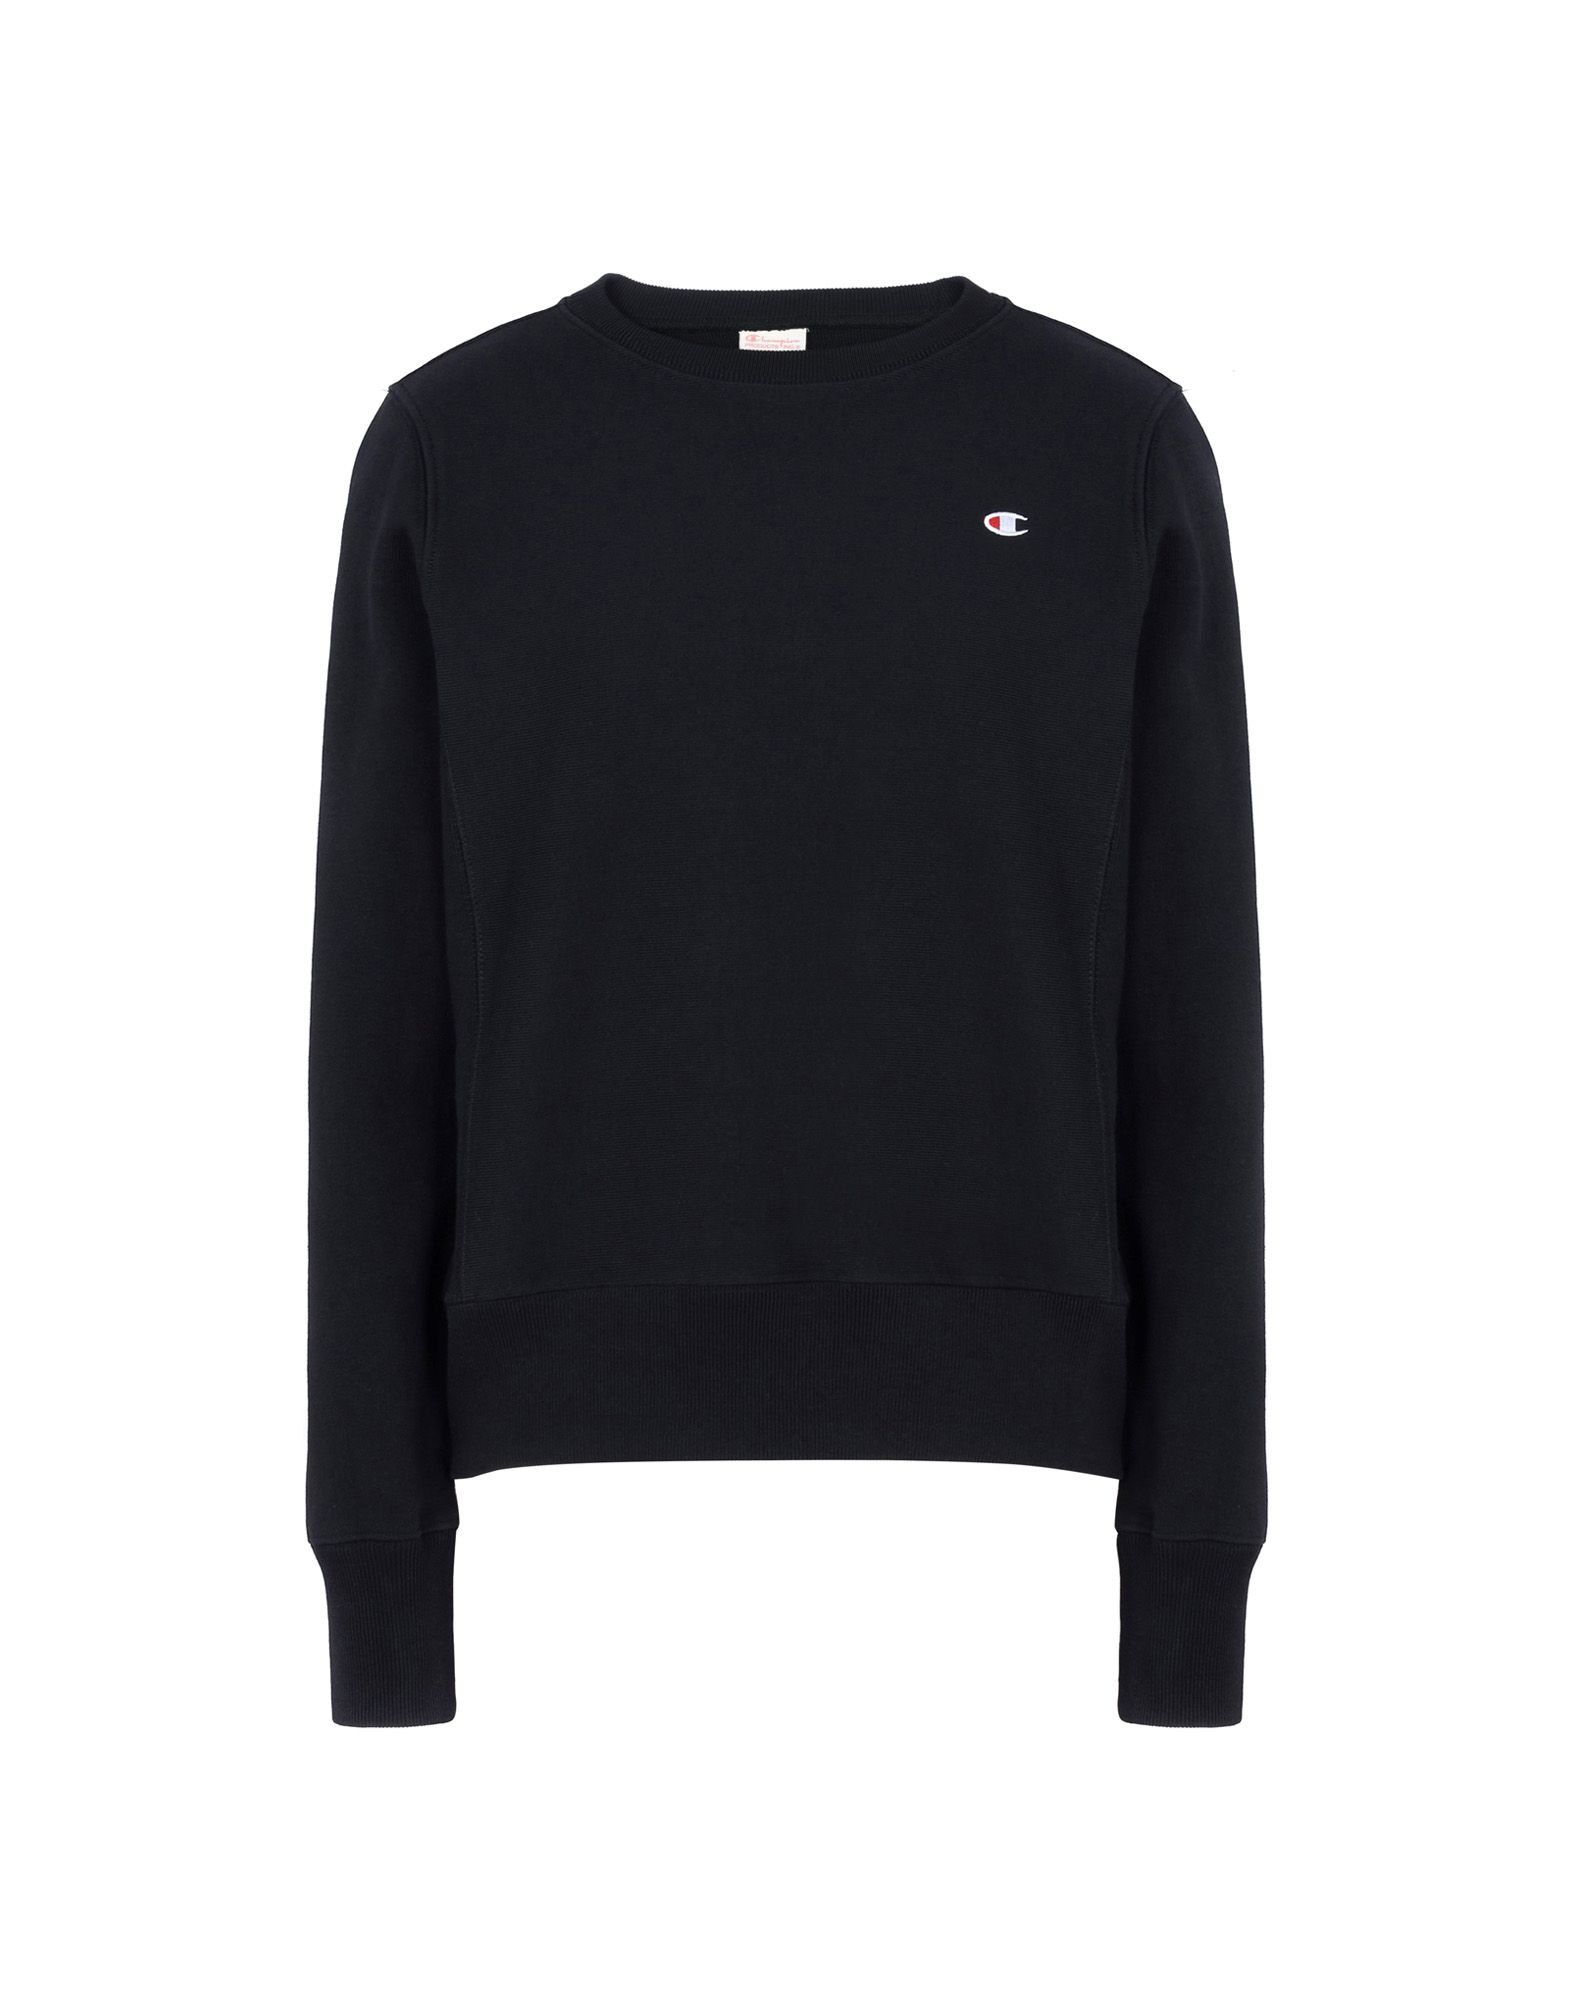 Reverse Weave Terry Crew Neck Sweatshirt, Black